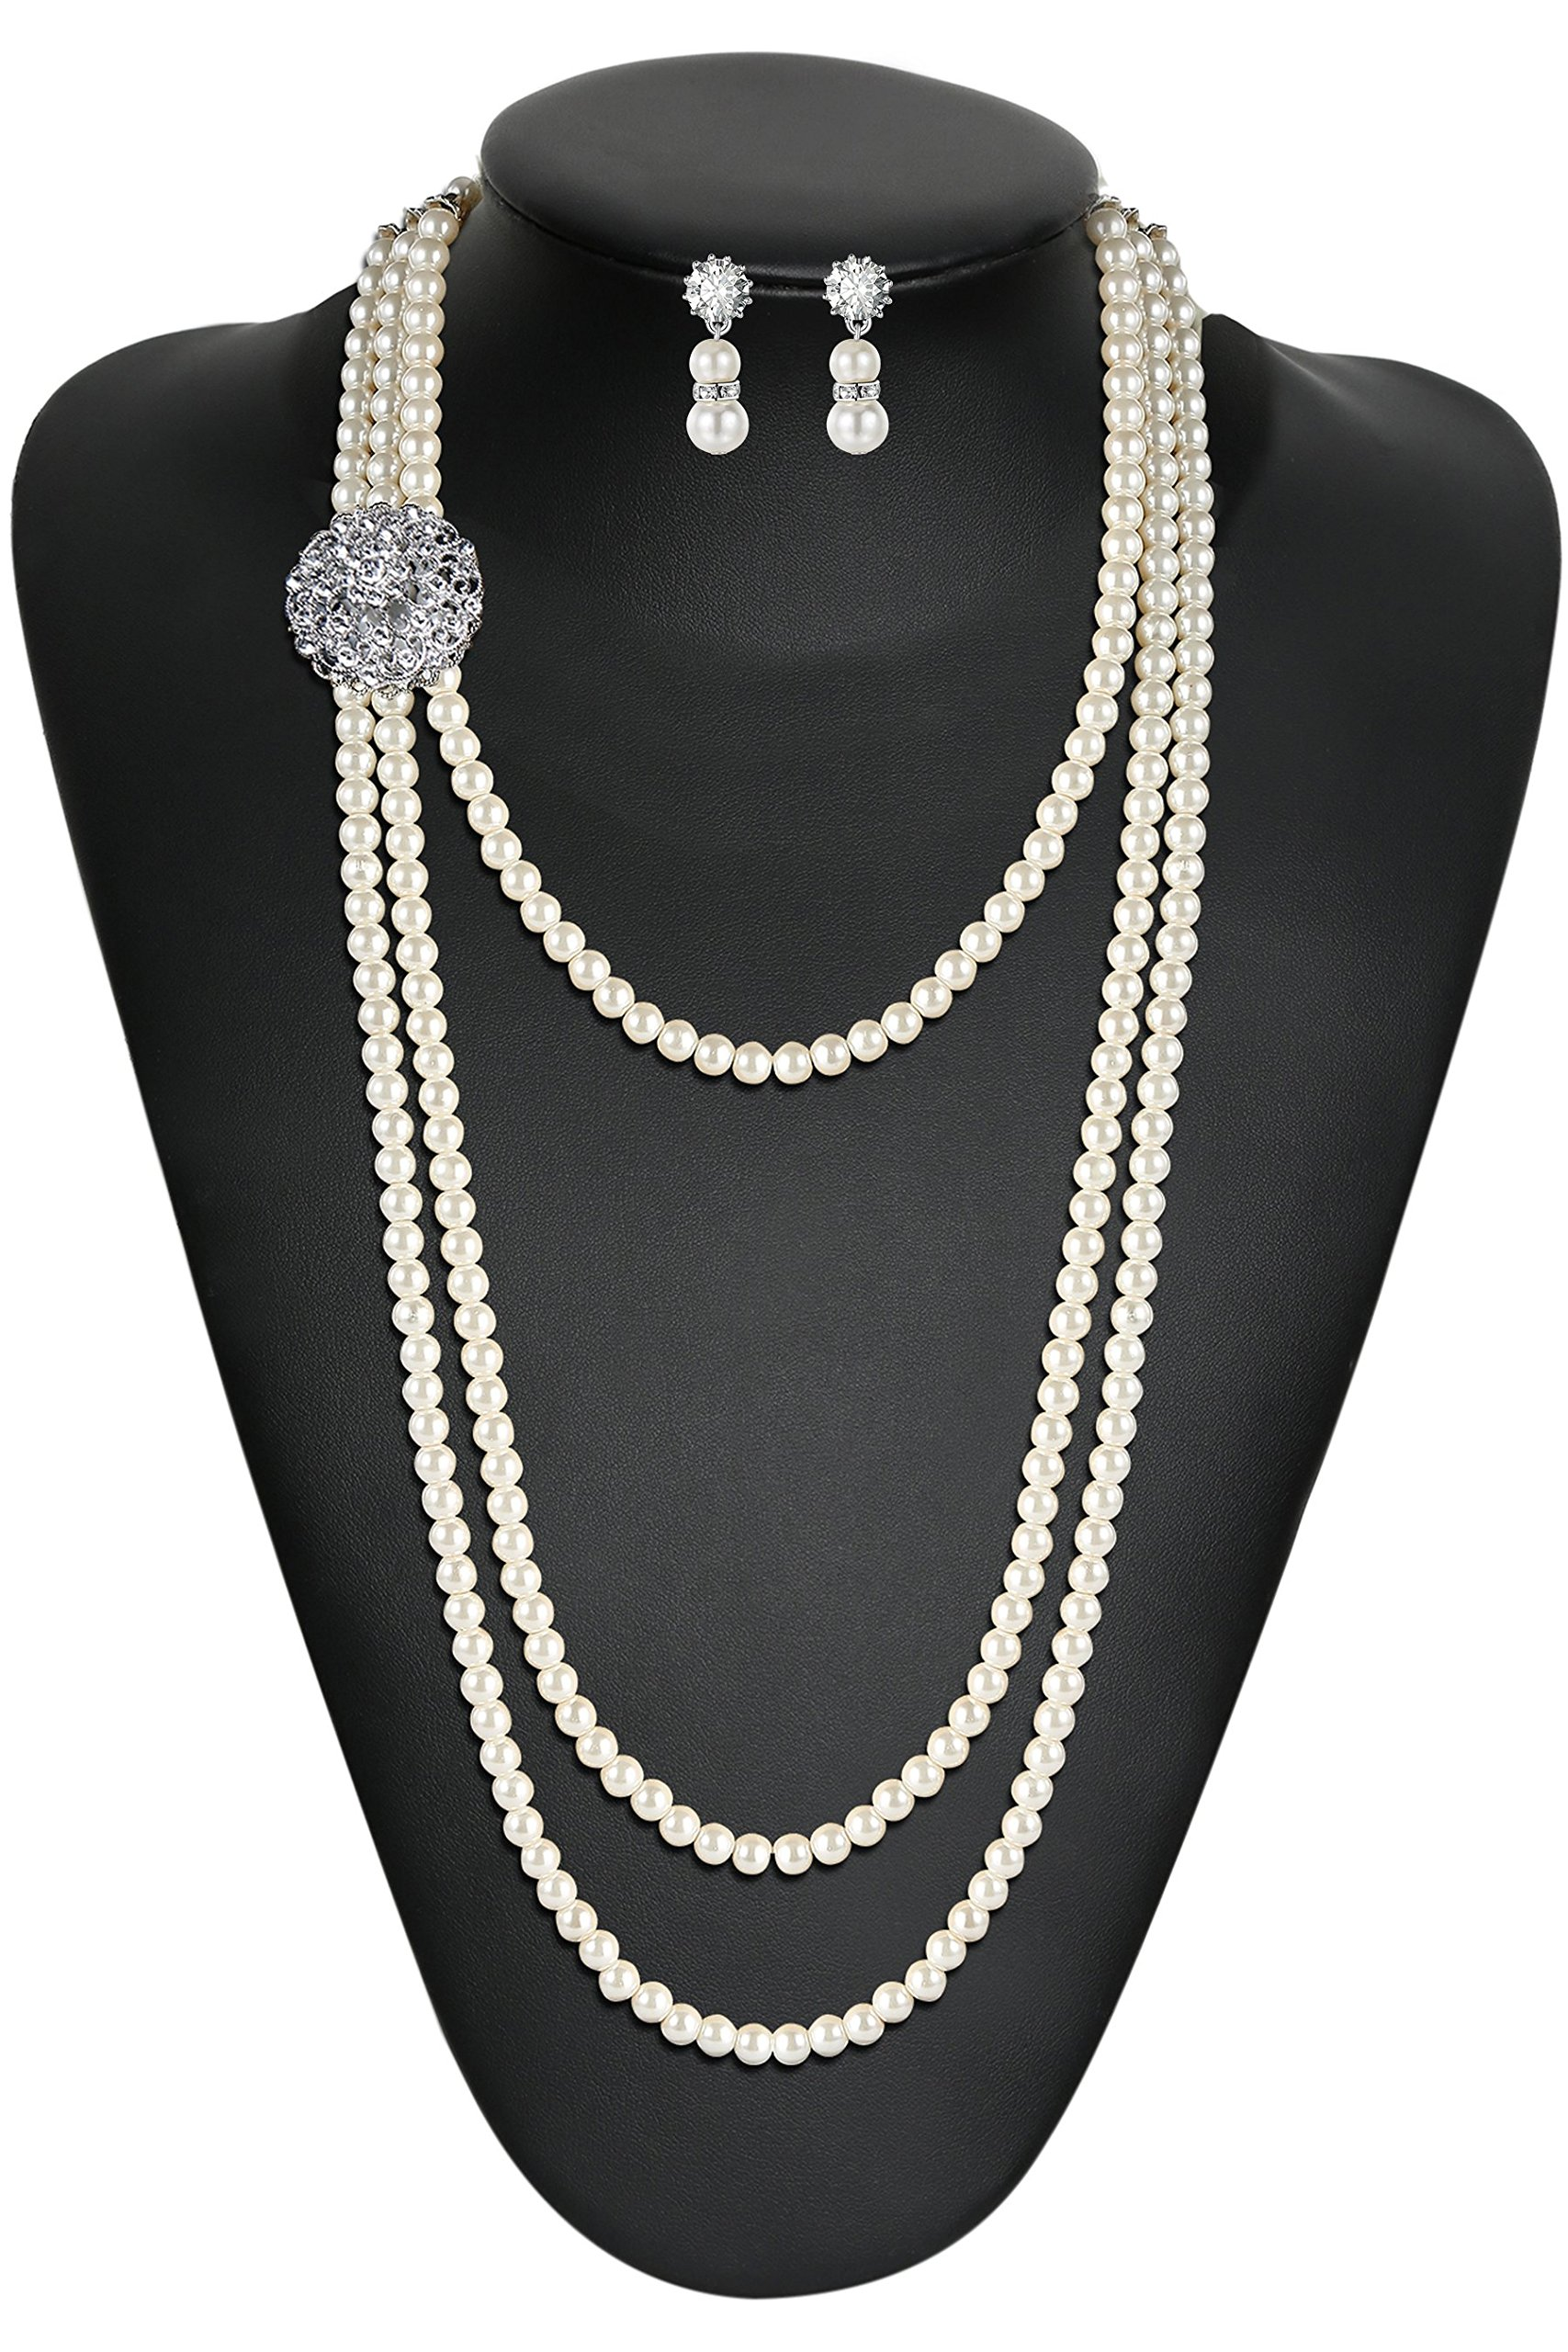 BABEYOND 1920s Gatsby Pearl Necklace Vintage Bridal Pearl Necklace Earrings Jewelry Set Multilayer Imitation Pearl Necklace with Brooch (Style 1) by BABEYOND (Image #2)